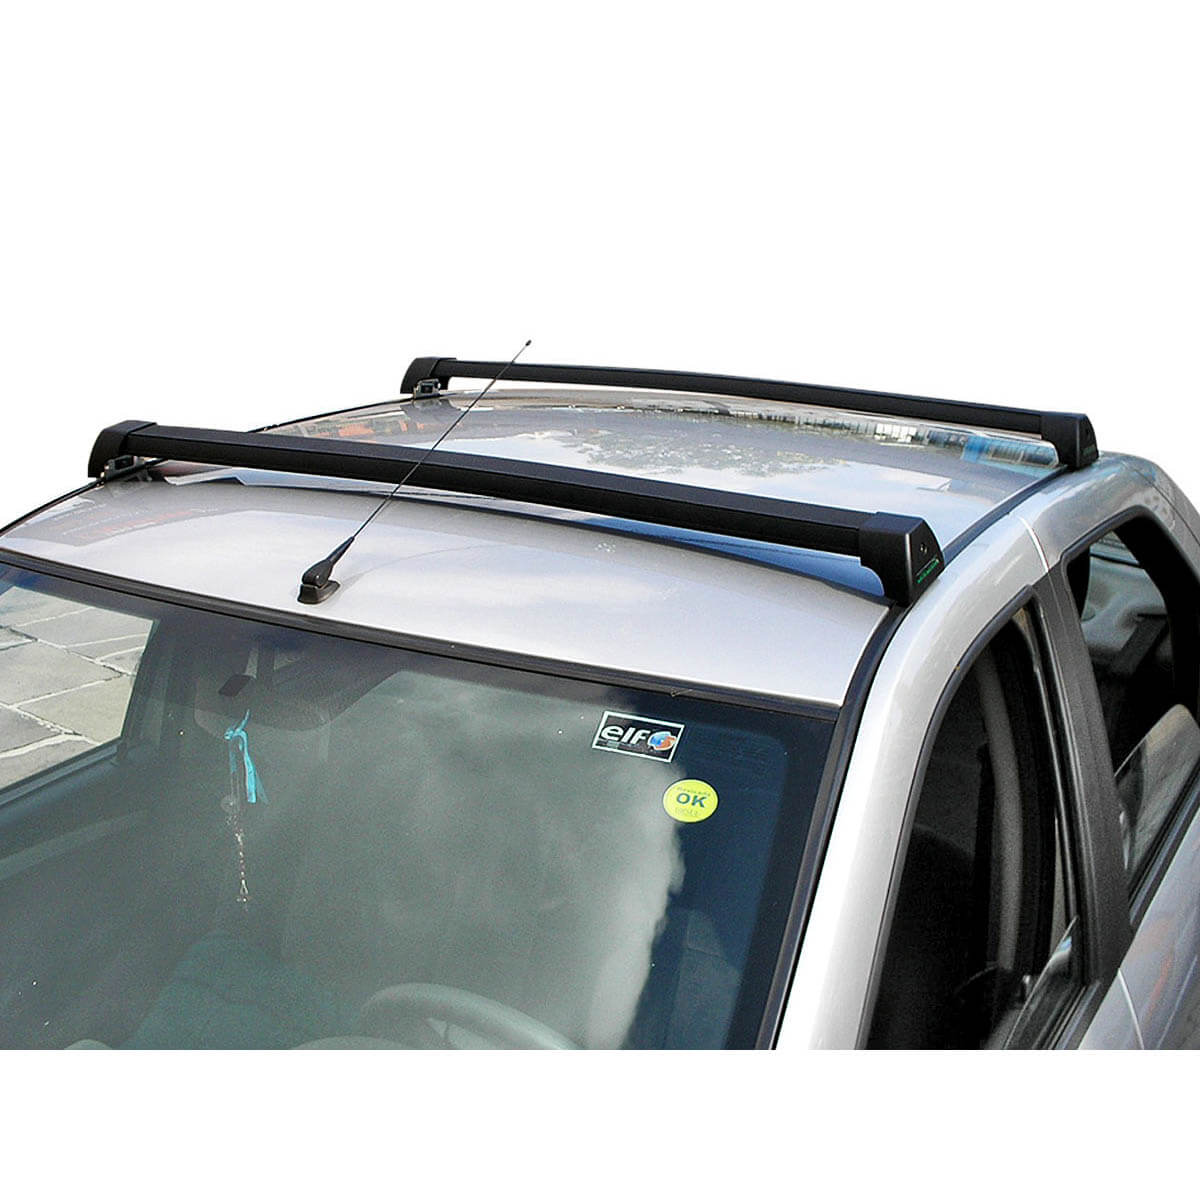 Rack de teto Long Life Sports preto Megane Sedan 2007 a 2011